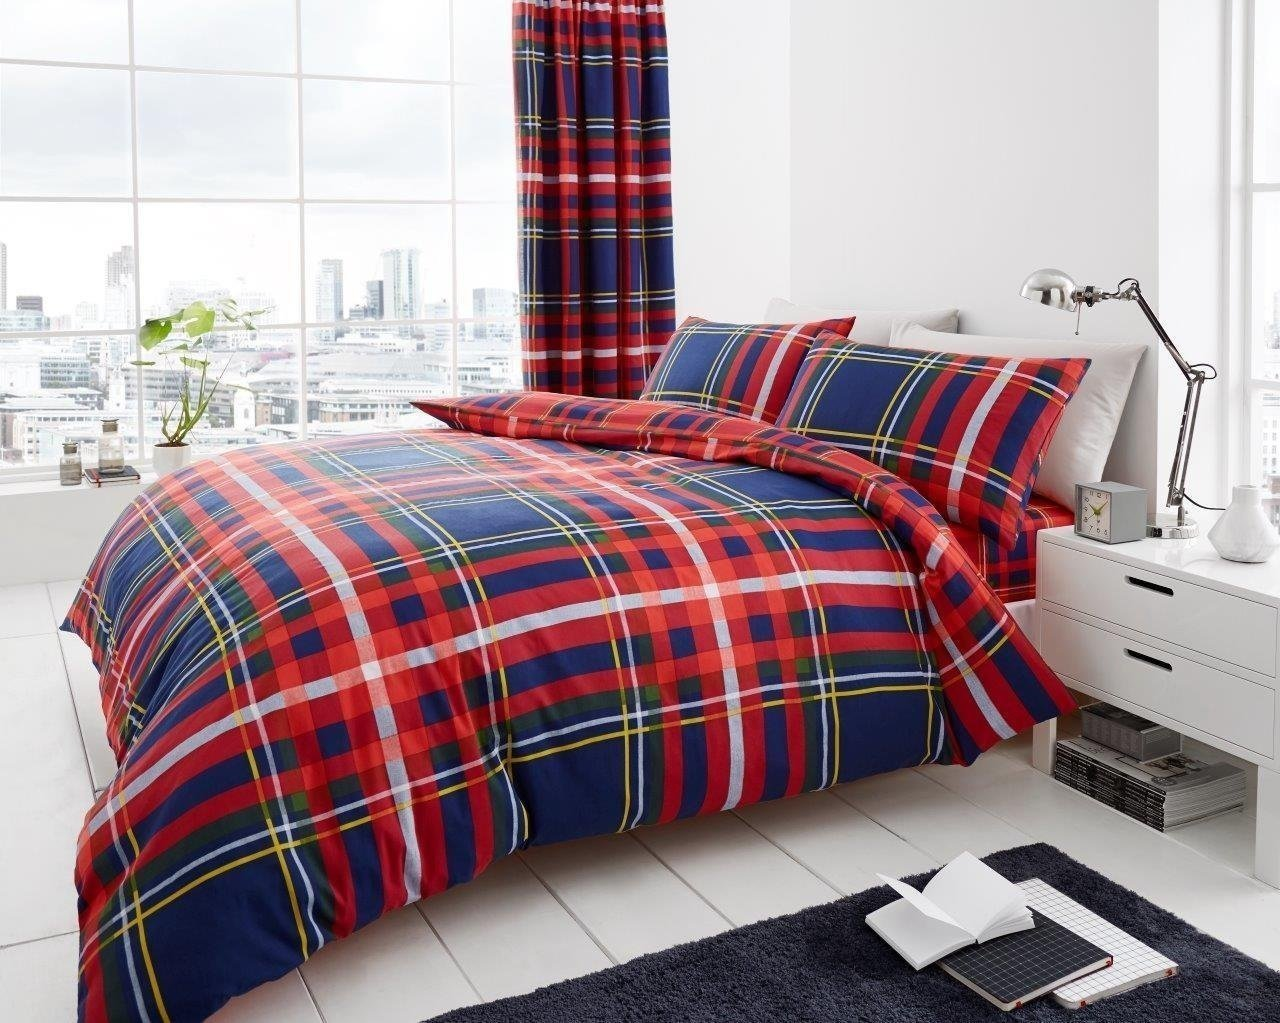 Gaveno Cavailia Luxury NEWTON TARTAN CHECK Bed Set with Duvet Cover and Pillow Case, Polyester-Cotton, Navy, Double 11134763